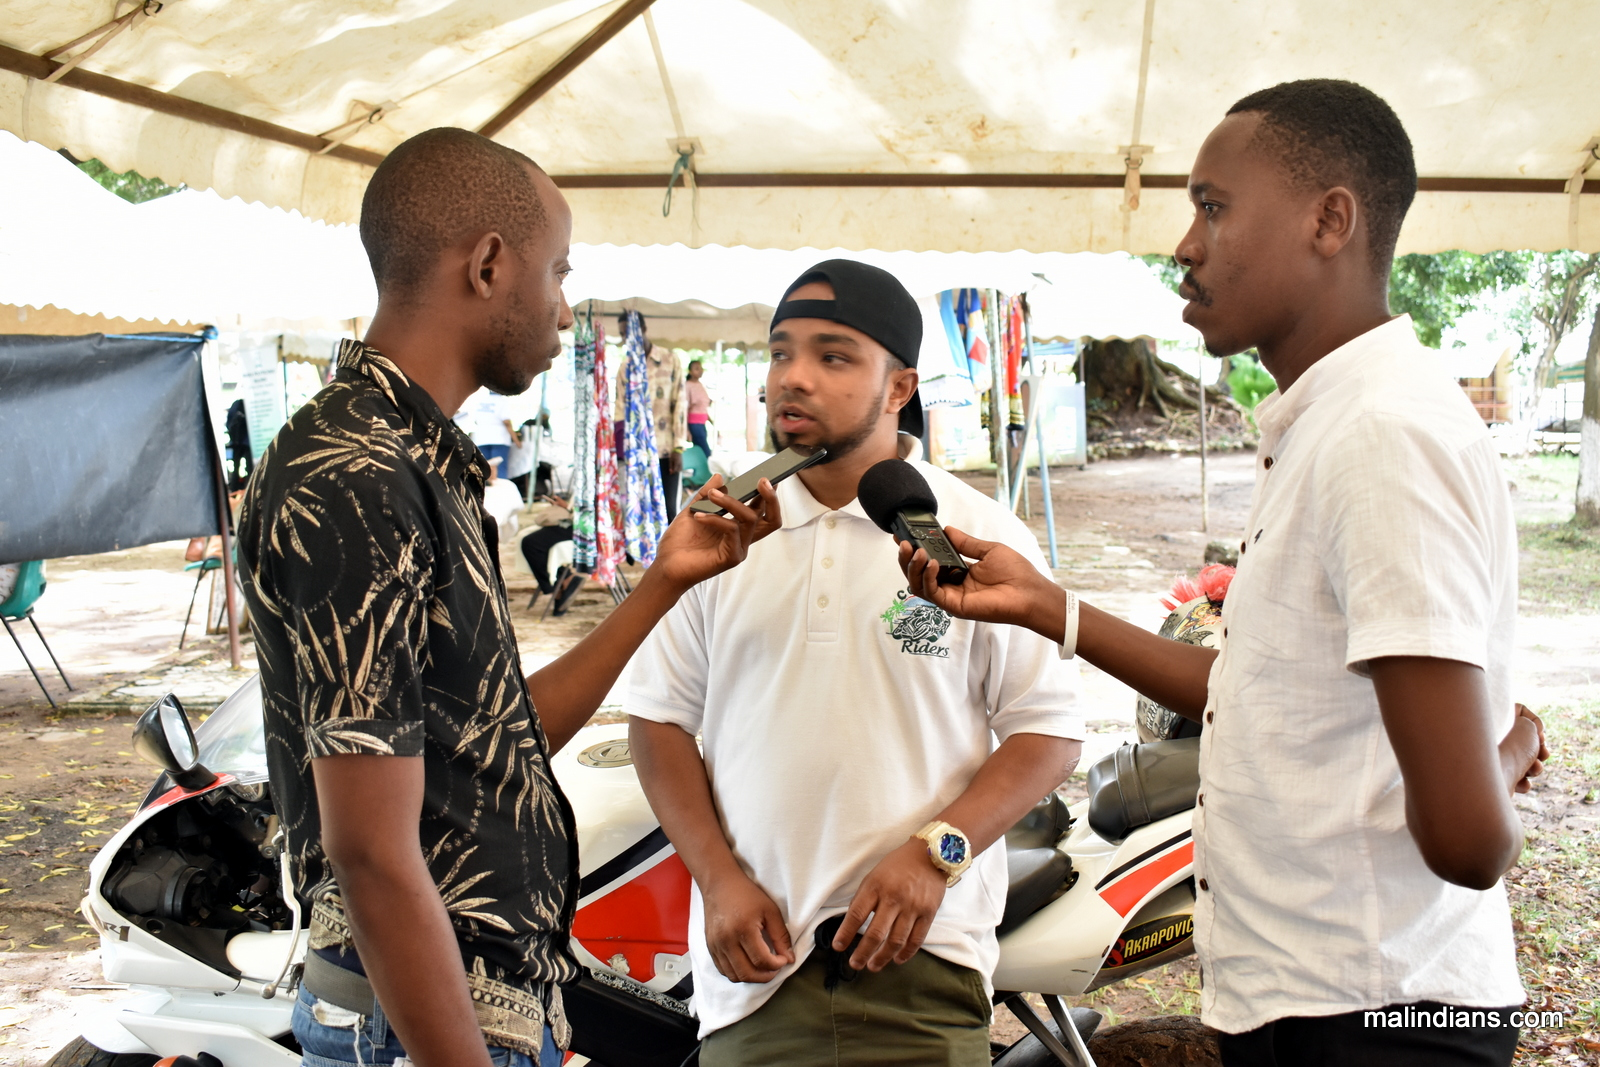 Malindi business Art exhibition 0219 - 8 Facebook Pages to Follow About Malindi Town